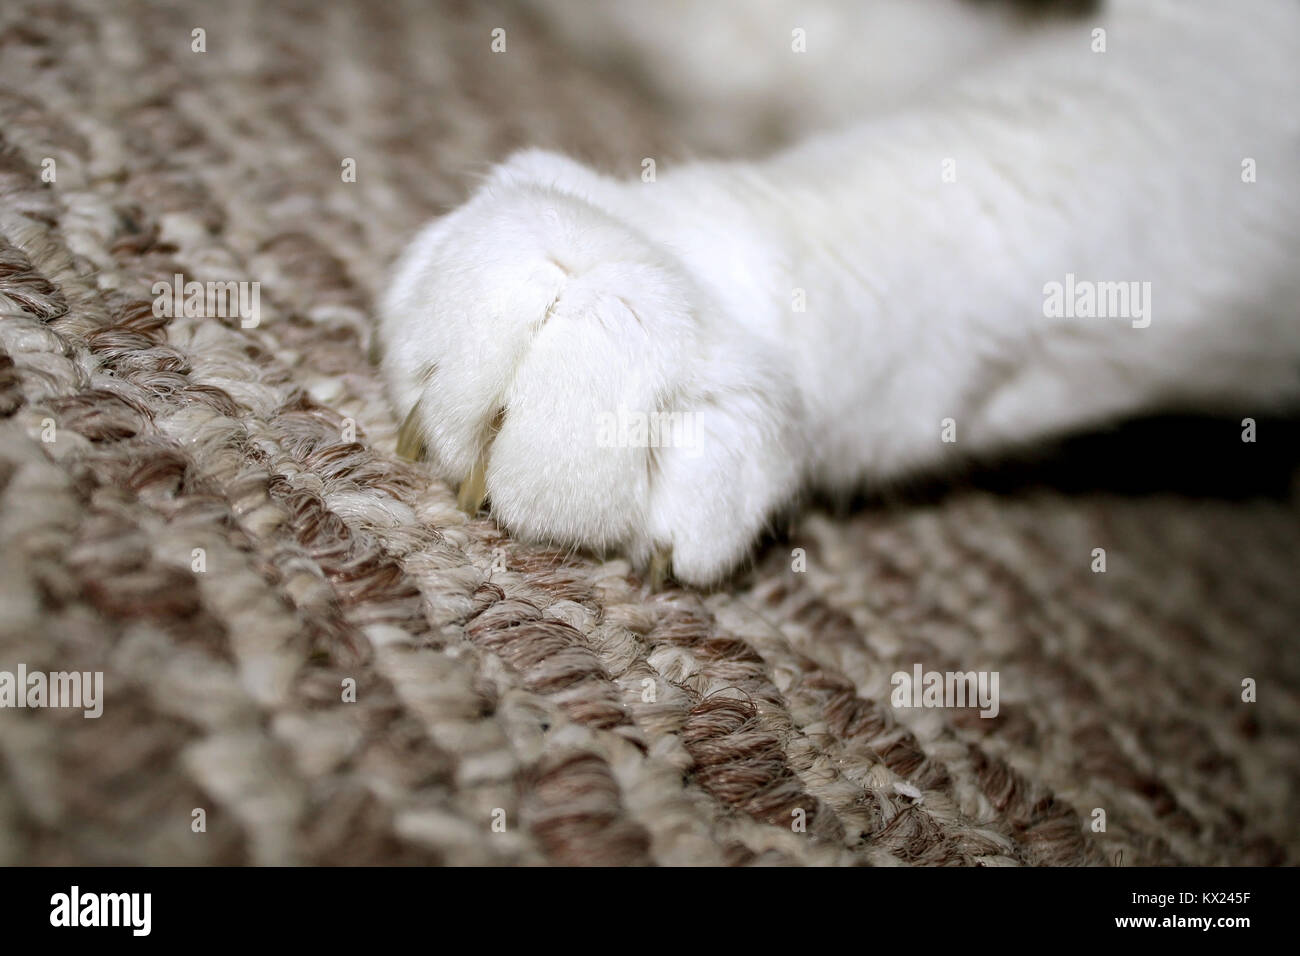 Cat Claw Digging Into Carpet - Stock Image